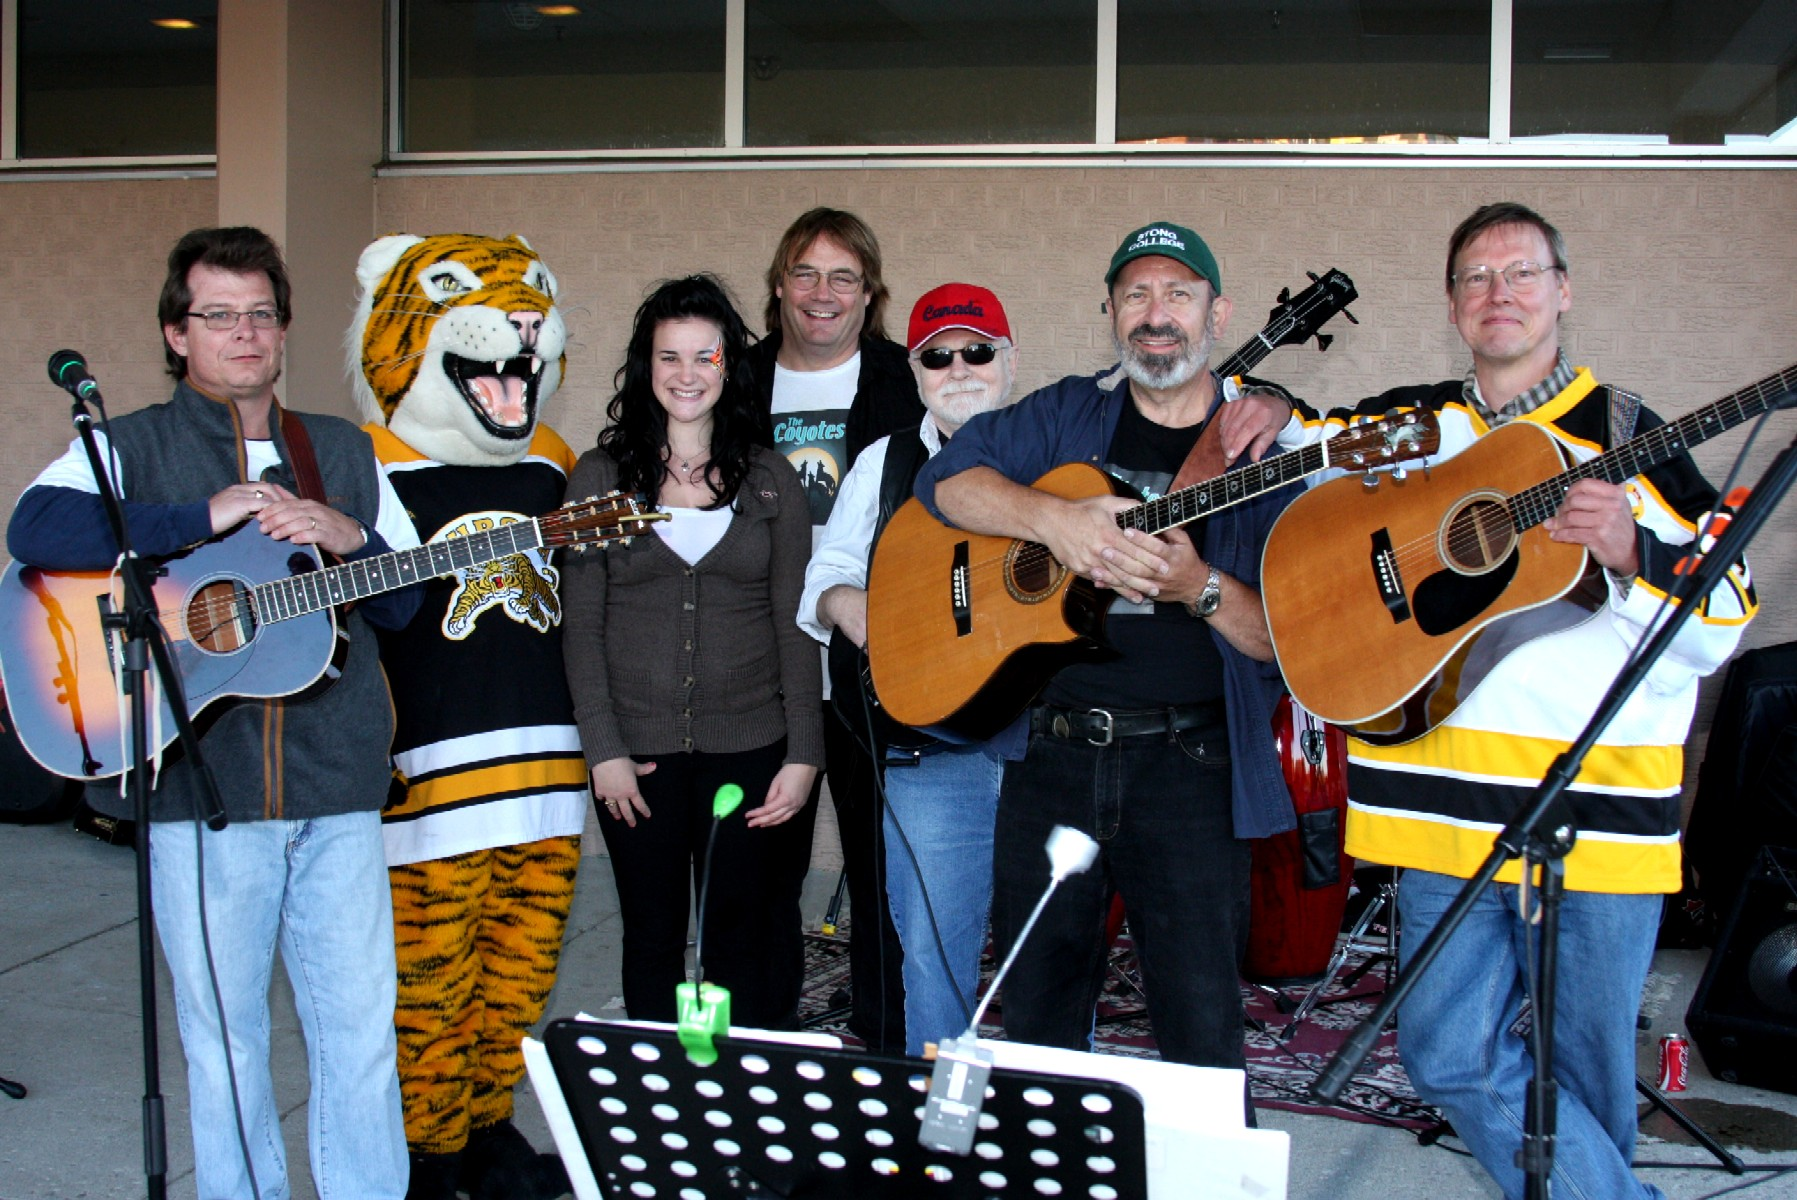 Band posing on stage - Mark,tiger mascot,unknown,Jim DeVries,Paul Snelgrove,Peter,Eric